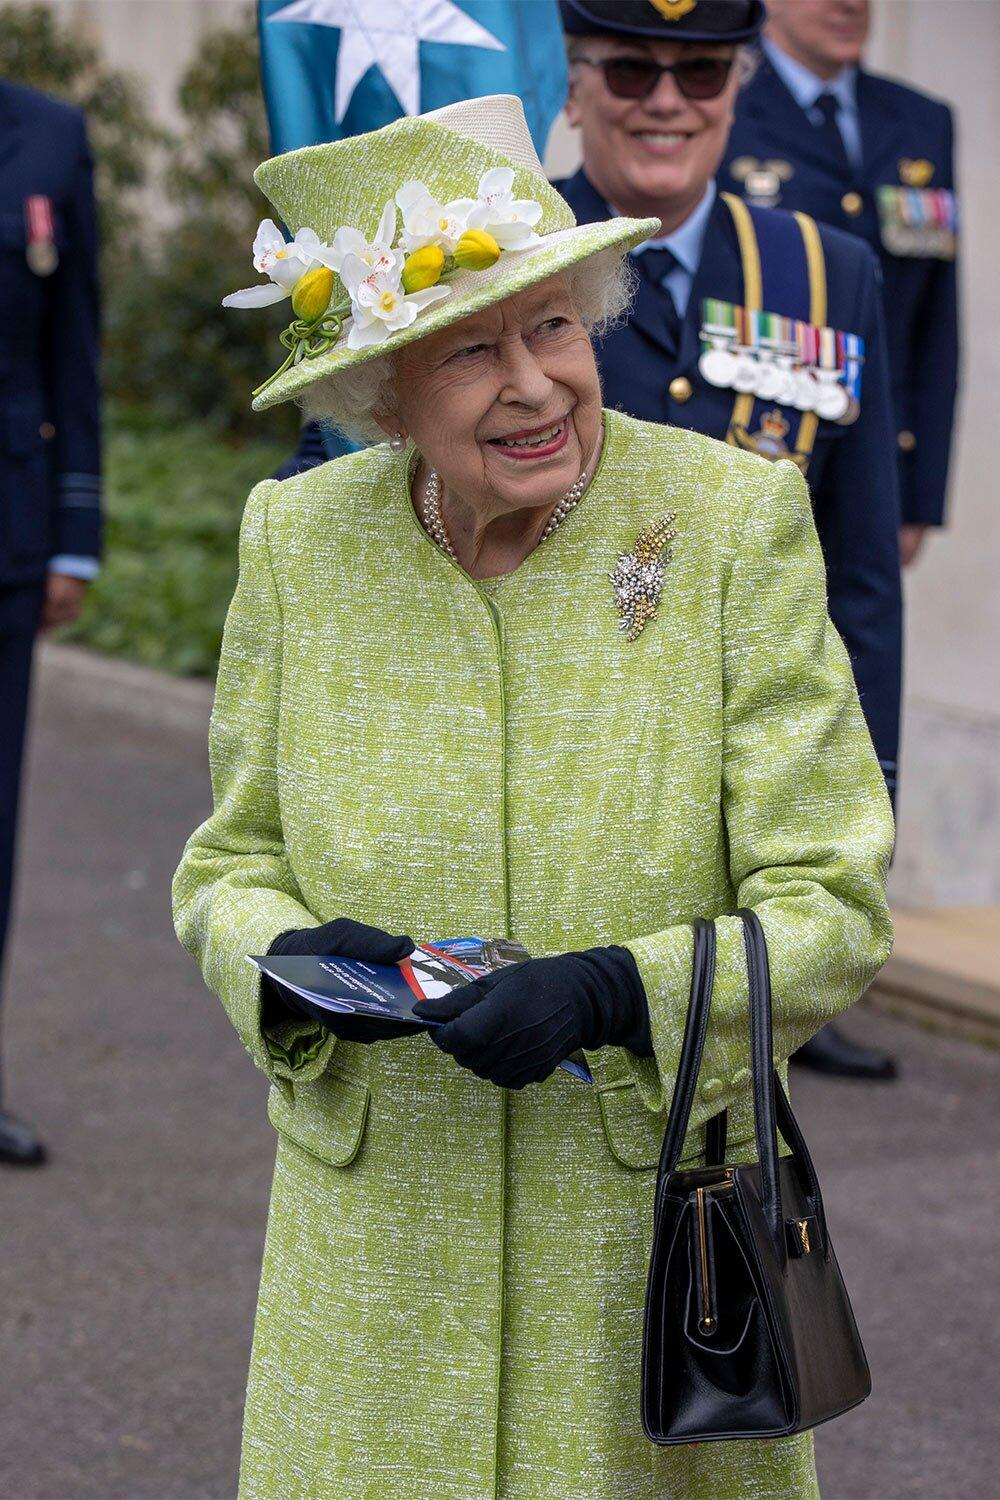 Queen Elizabeth Attends First Royal Duty Since Prince Philip's Death